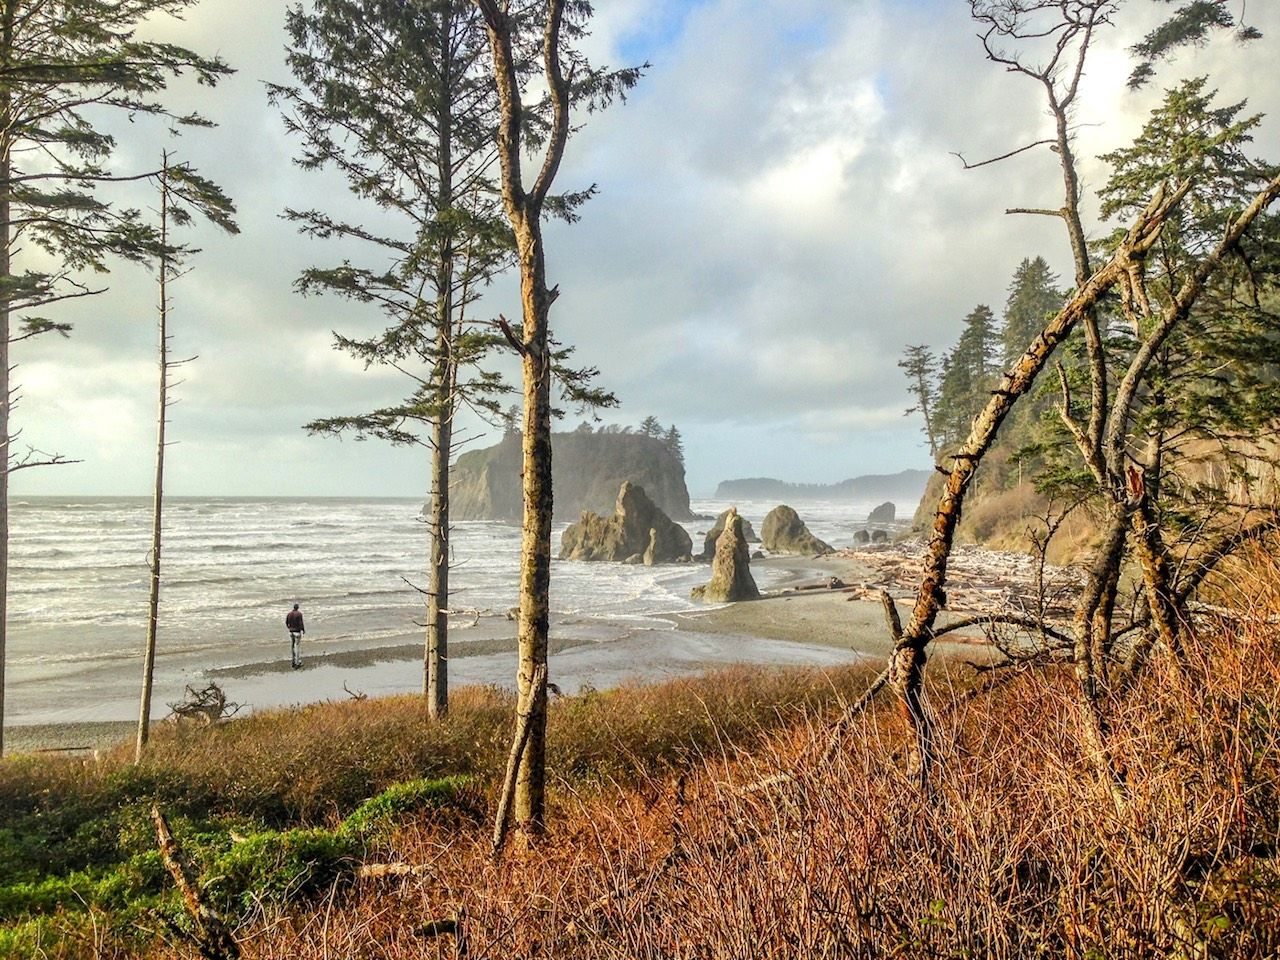 Pacific Northwest road trip photos